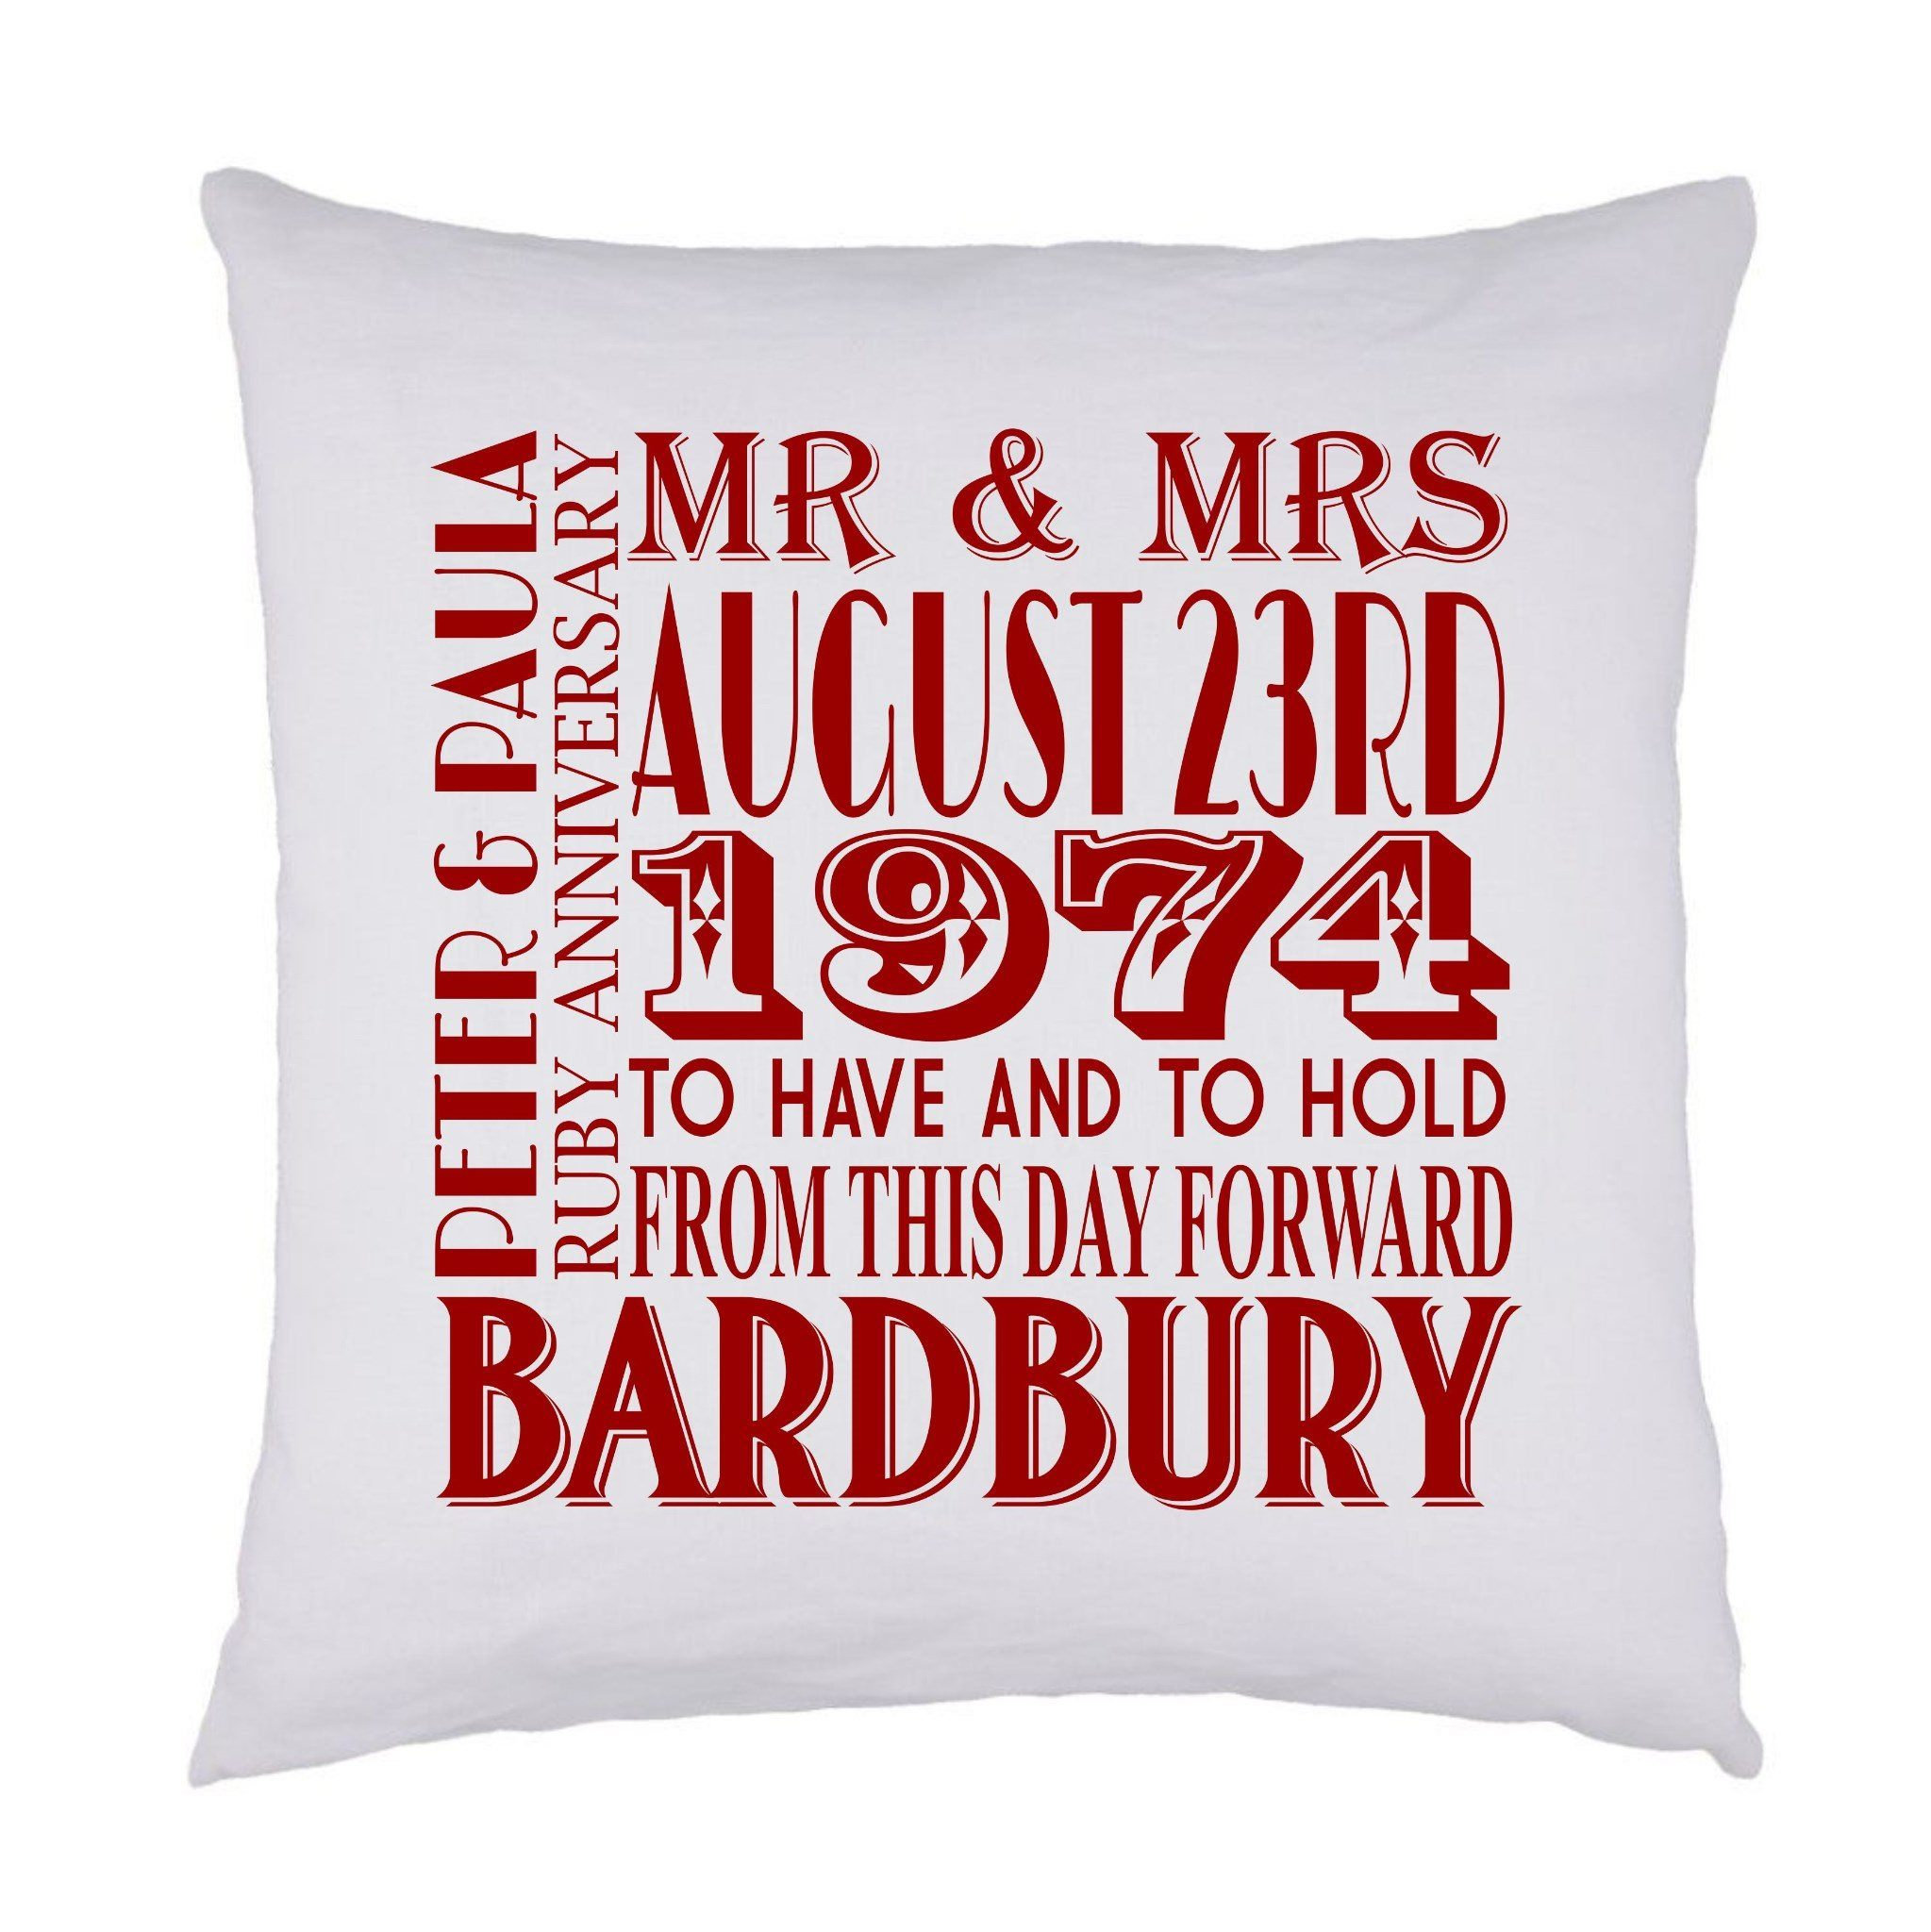 WEDDING ANNIVERSARY - PERSONALISED CUSHION COVER